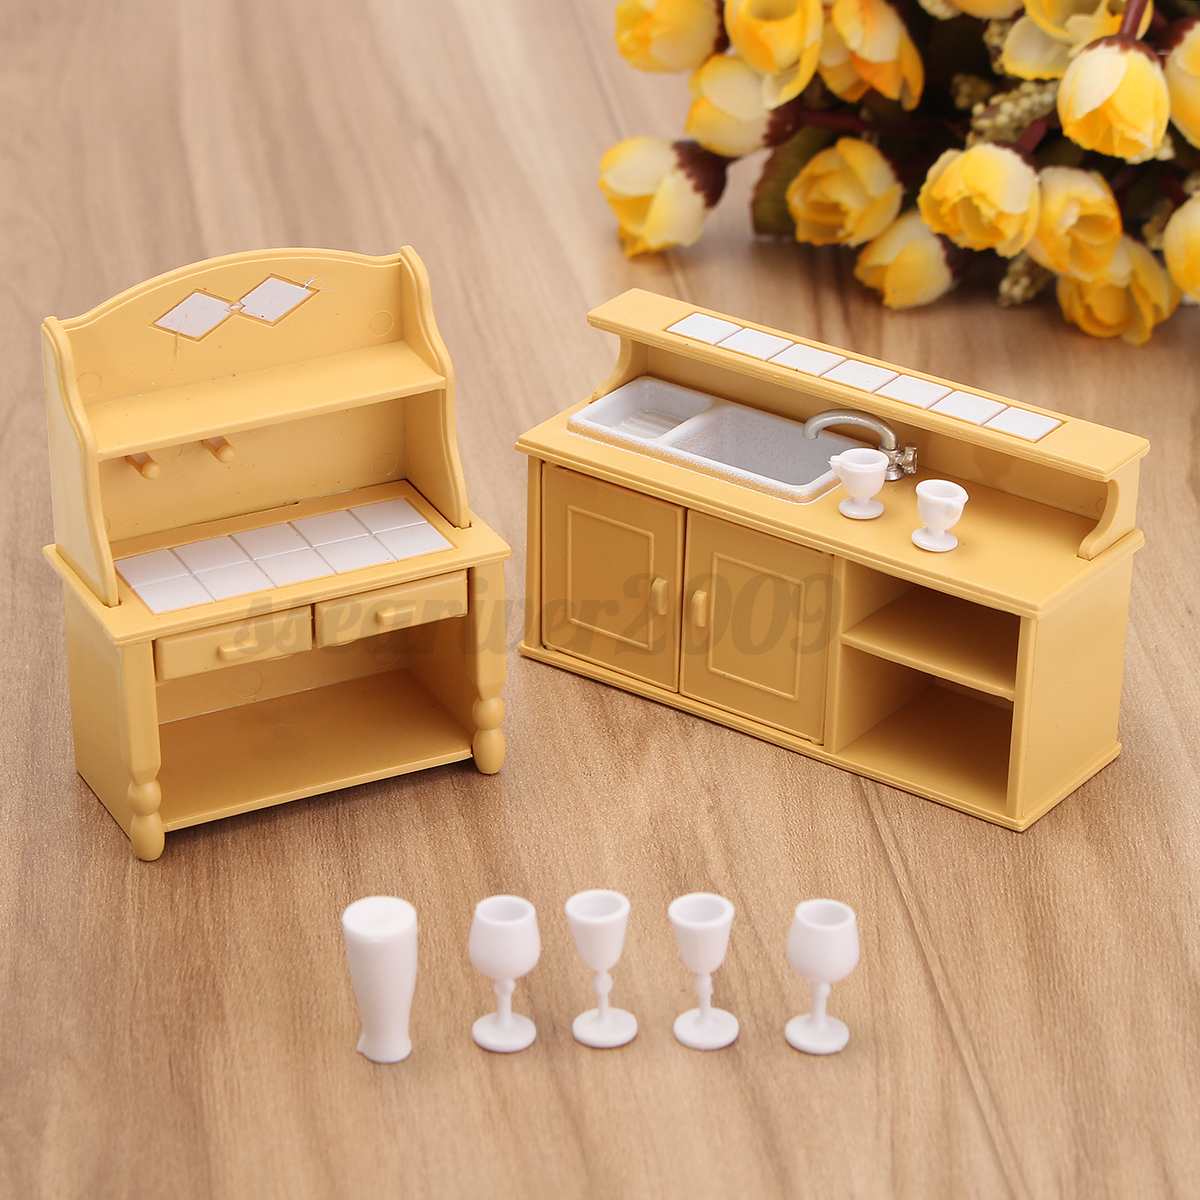 1 12 Scale Dollhouse Miniature Furniture Plastic Bunk Bed